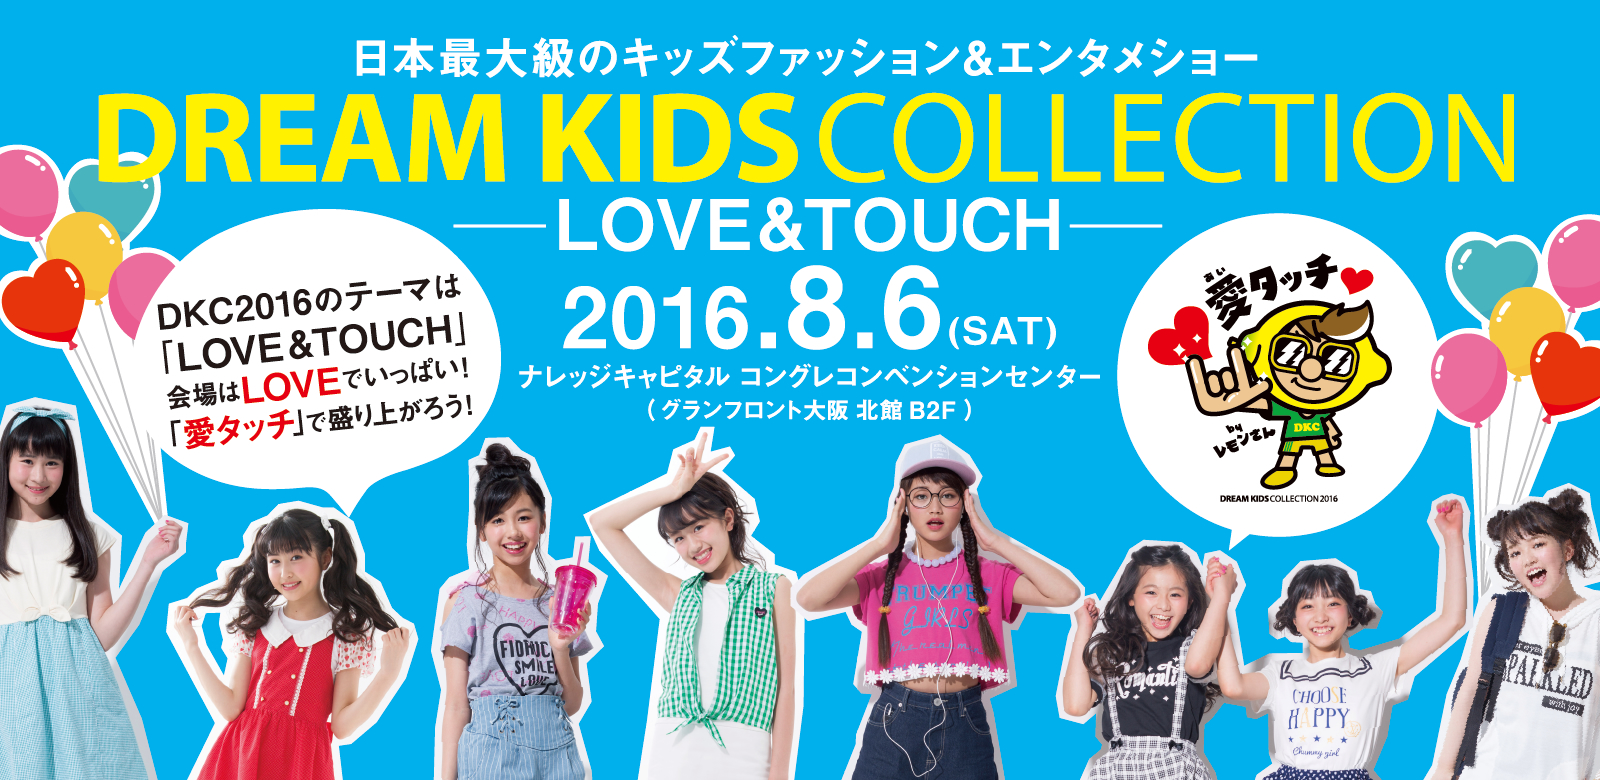 DREAM KIDS Collection 2016 -LOVE&TOUCH-